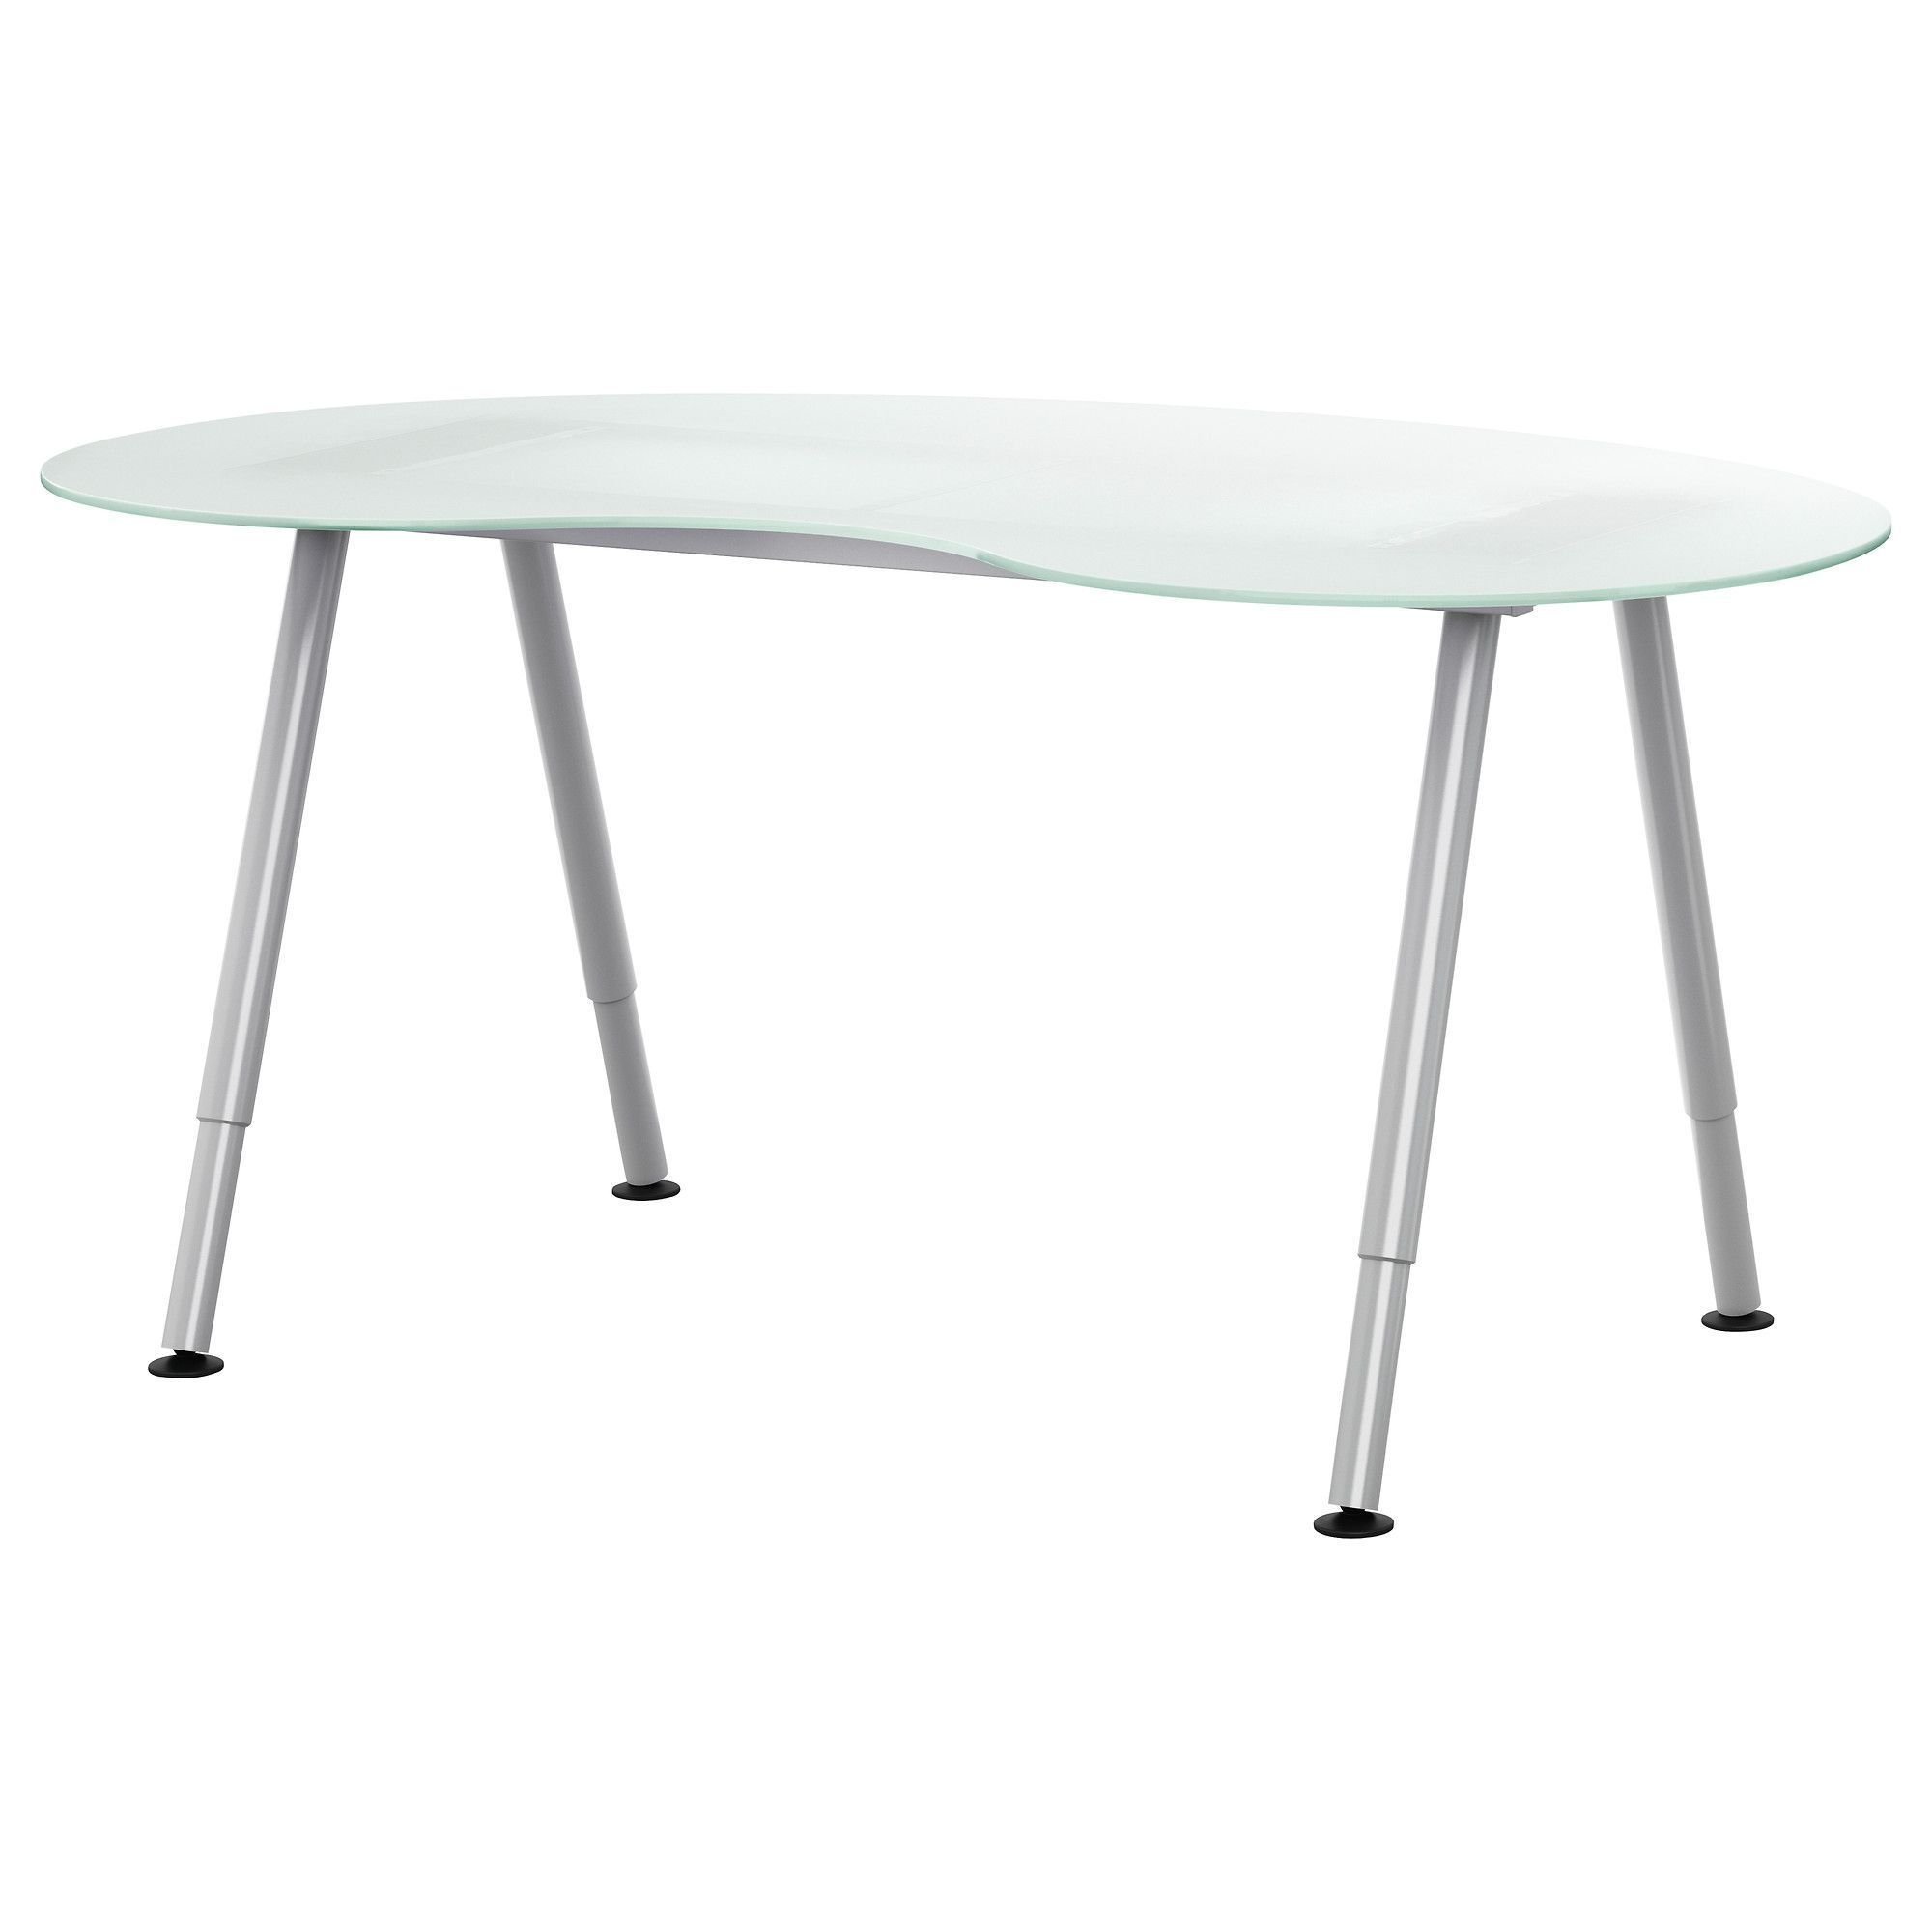 GALANT Desk bination silver colour IKEA My desk